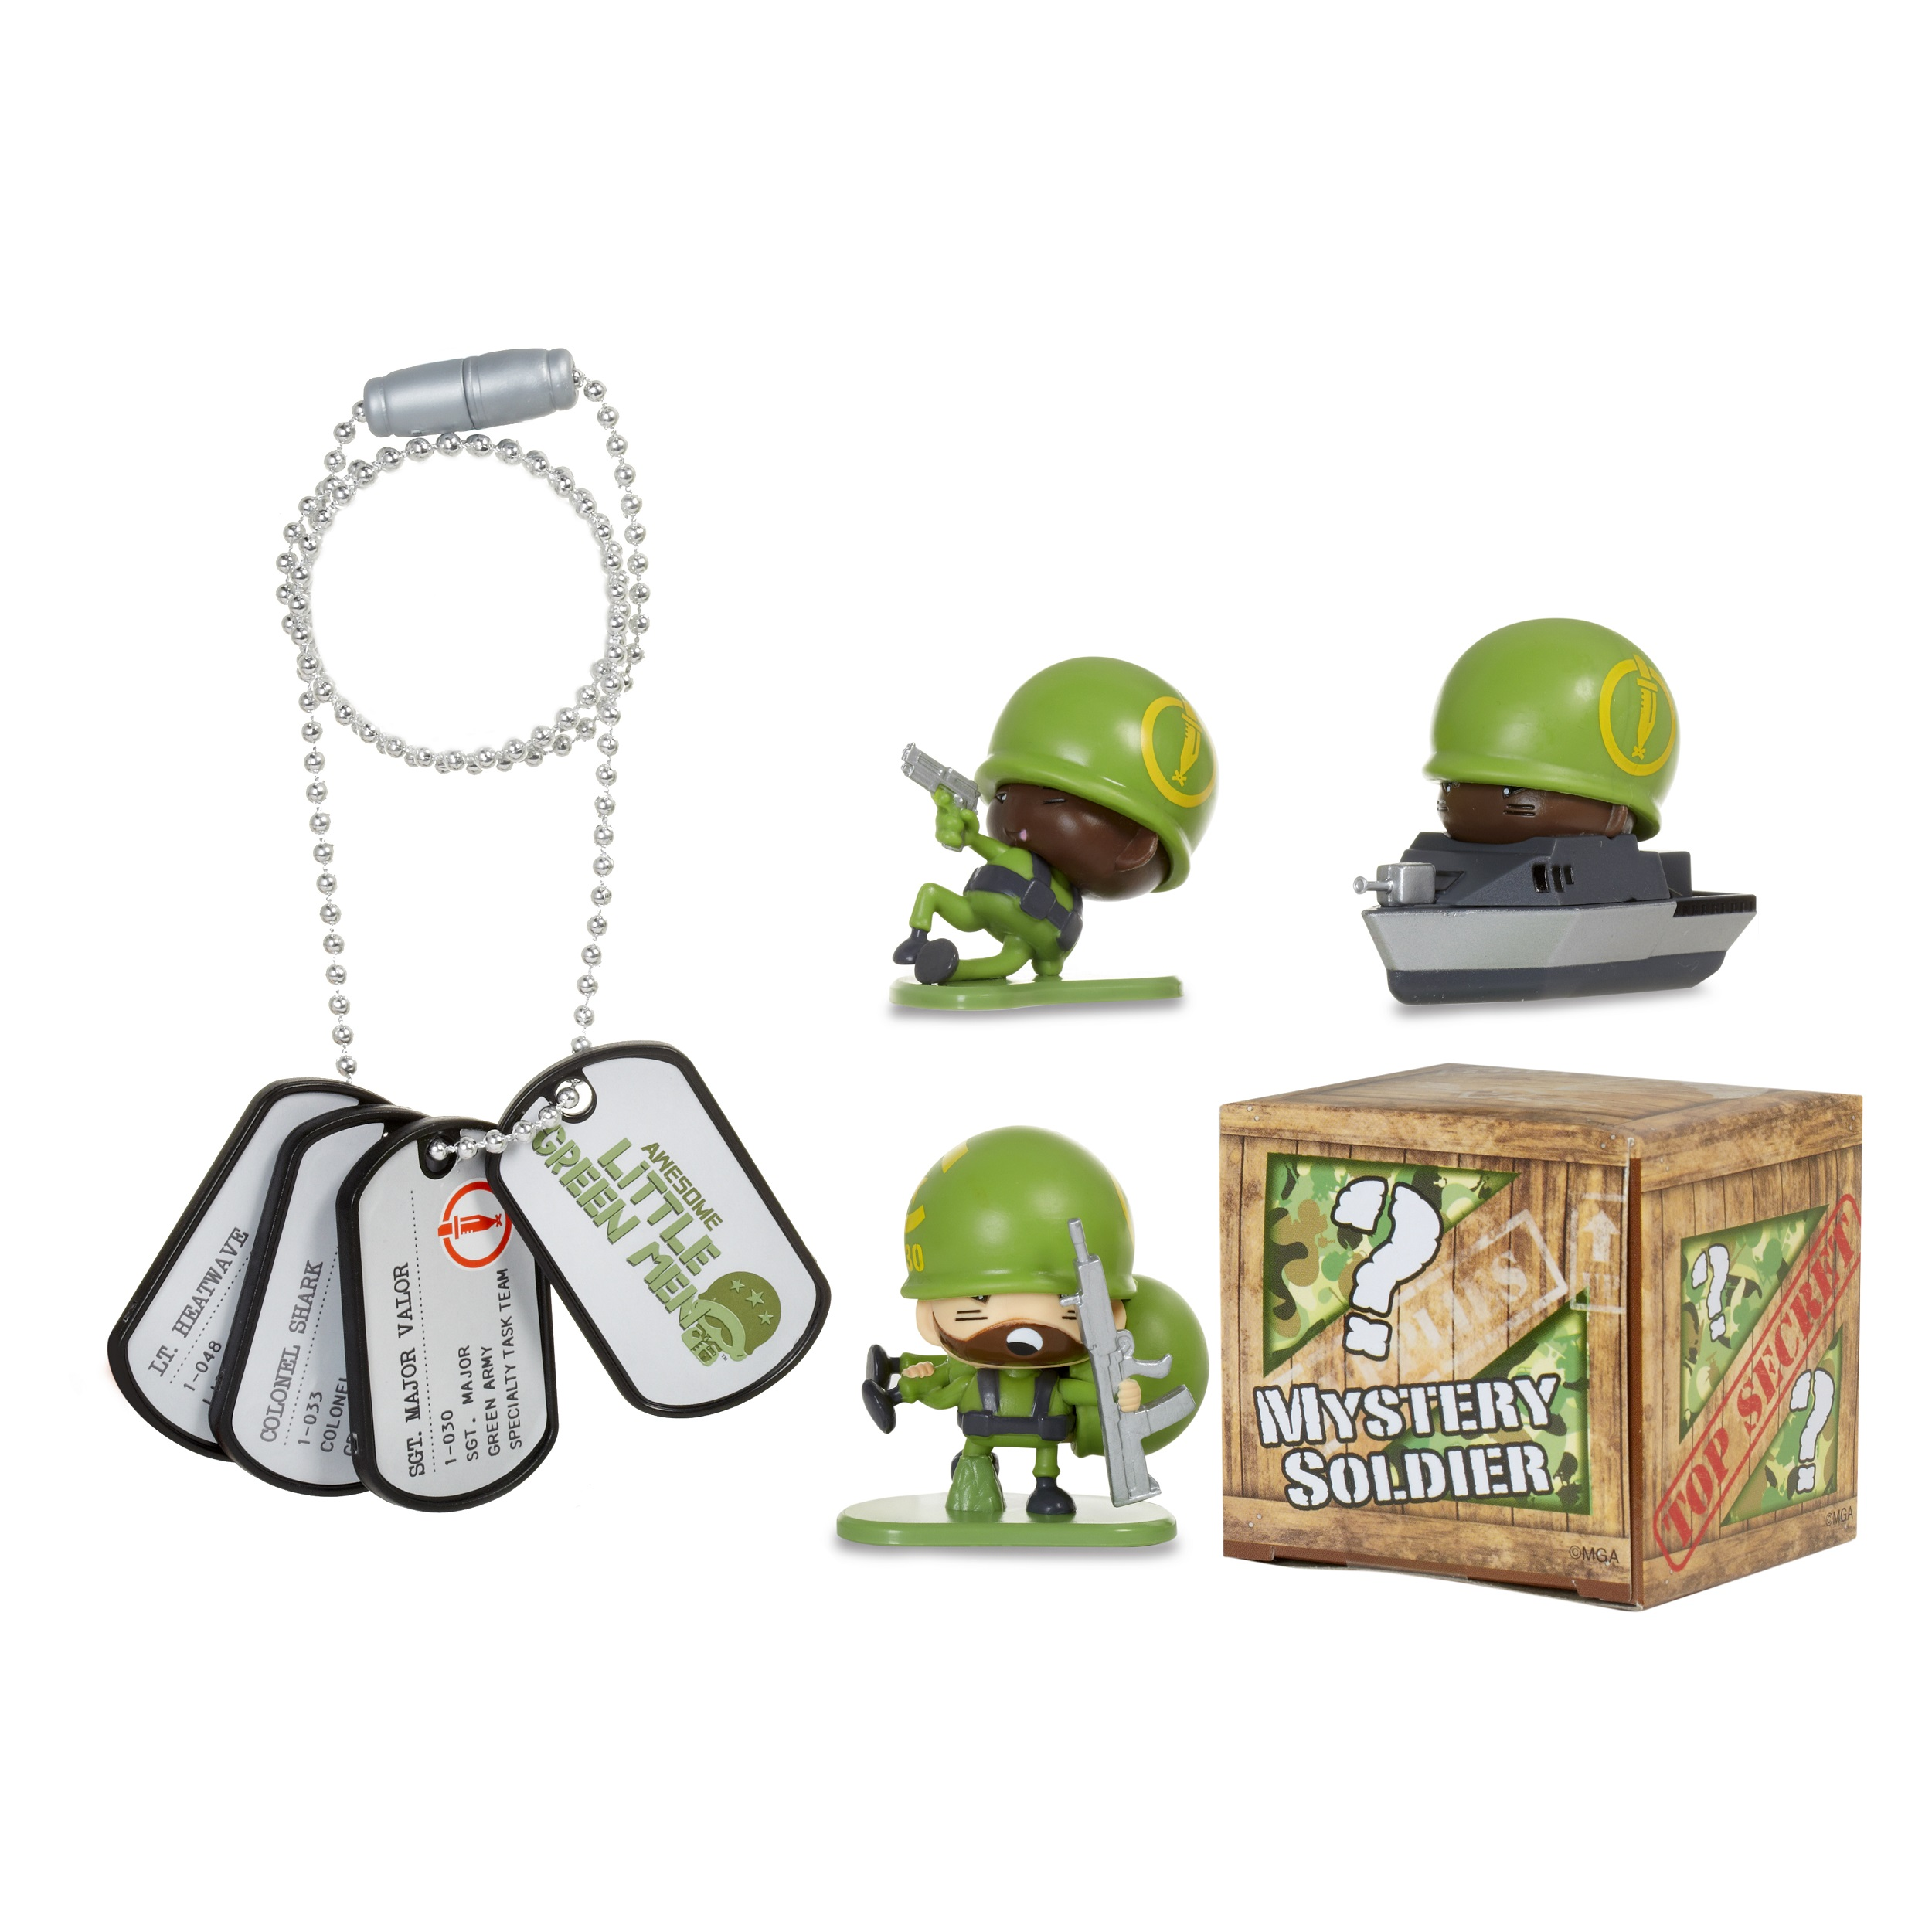 Awesome Little Green Men Series 1 Starter Pack - Specialty Task Team